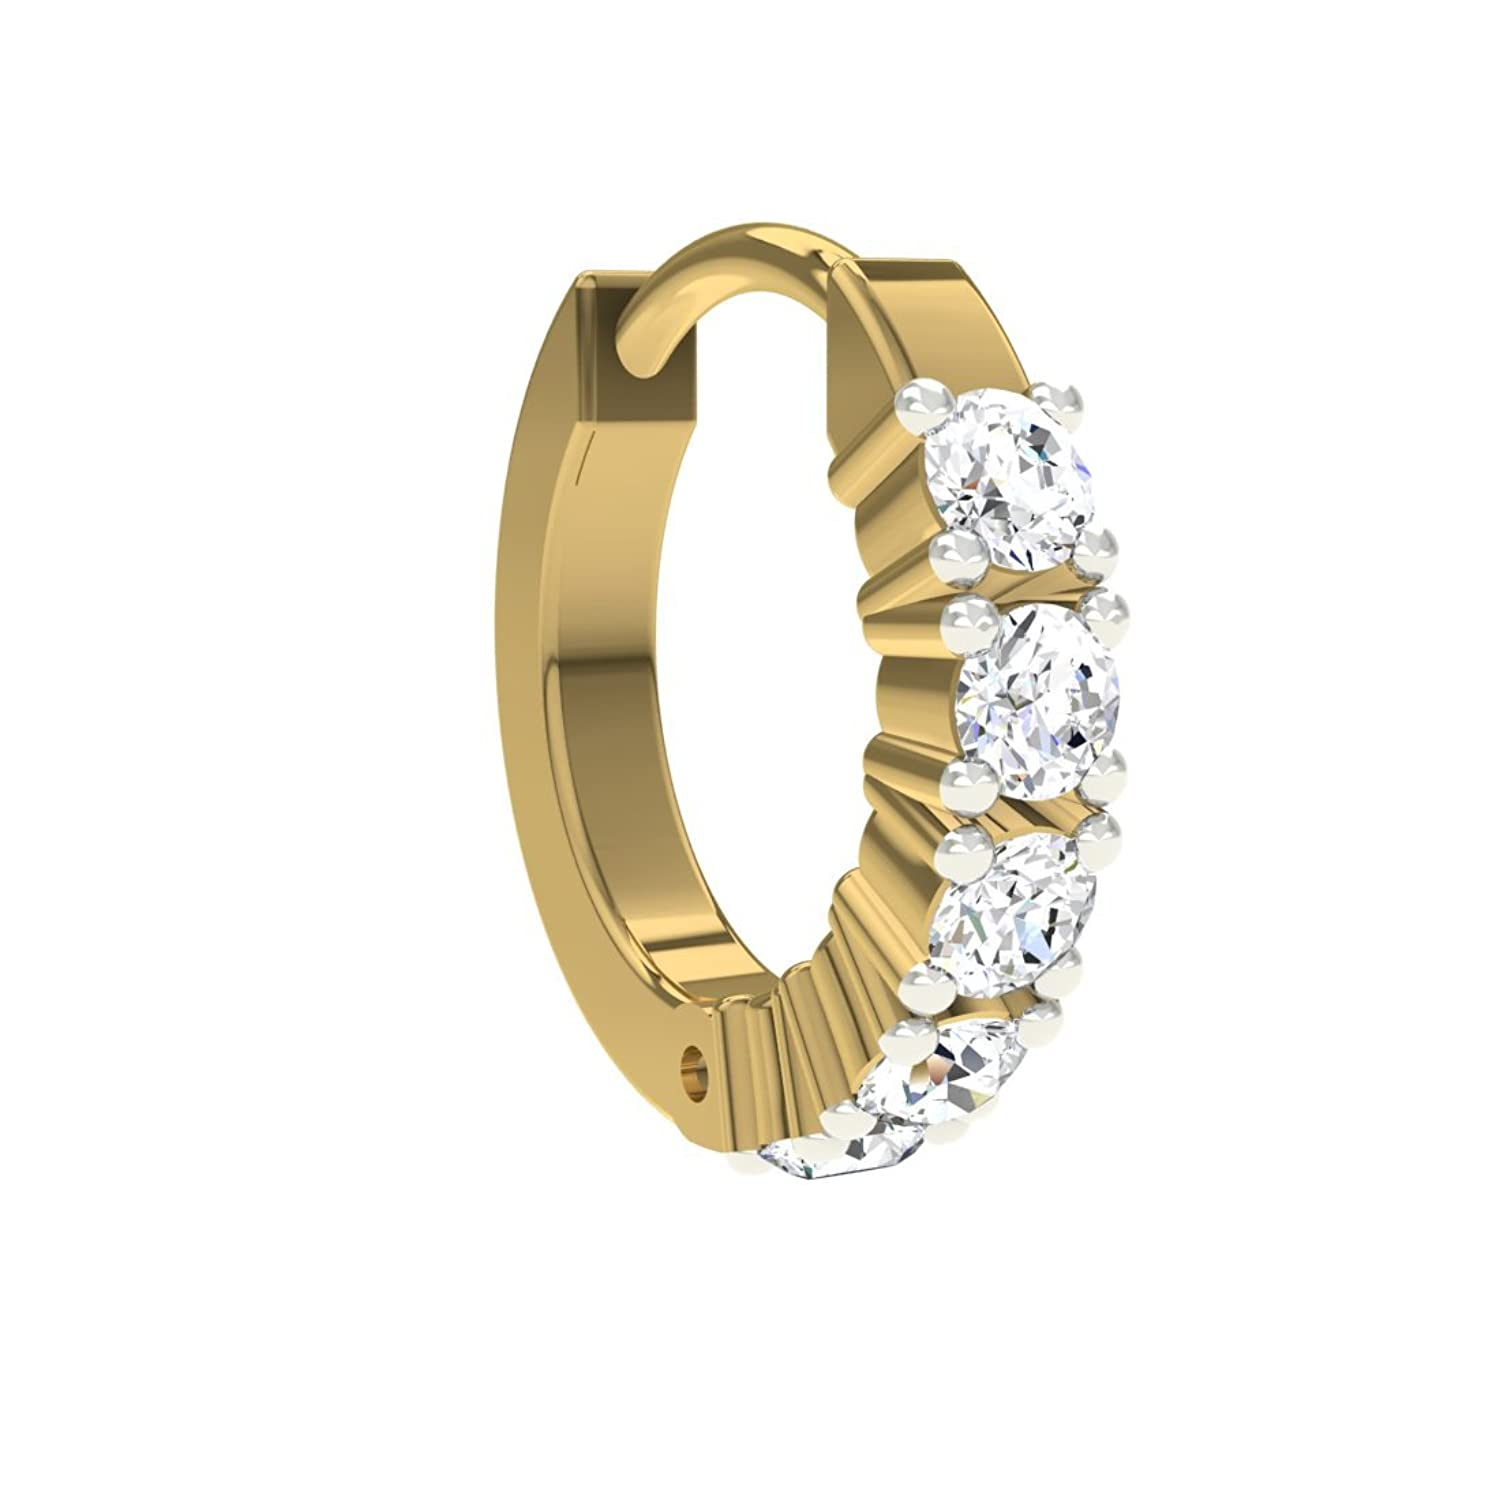 single jewellers rings ladies pune shop gender white parmar in goldrings gold ring jewellery jewellersparmar stone